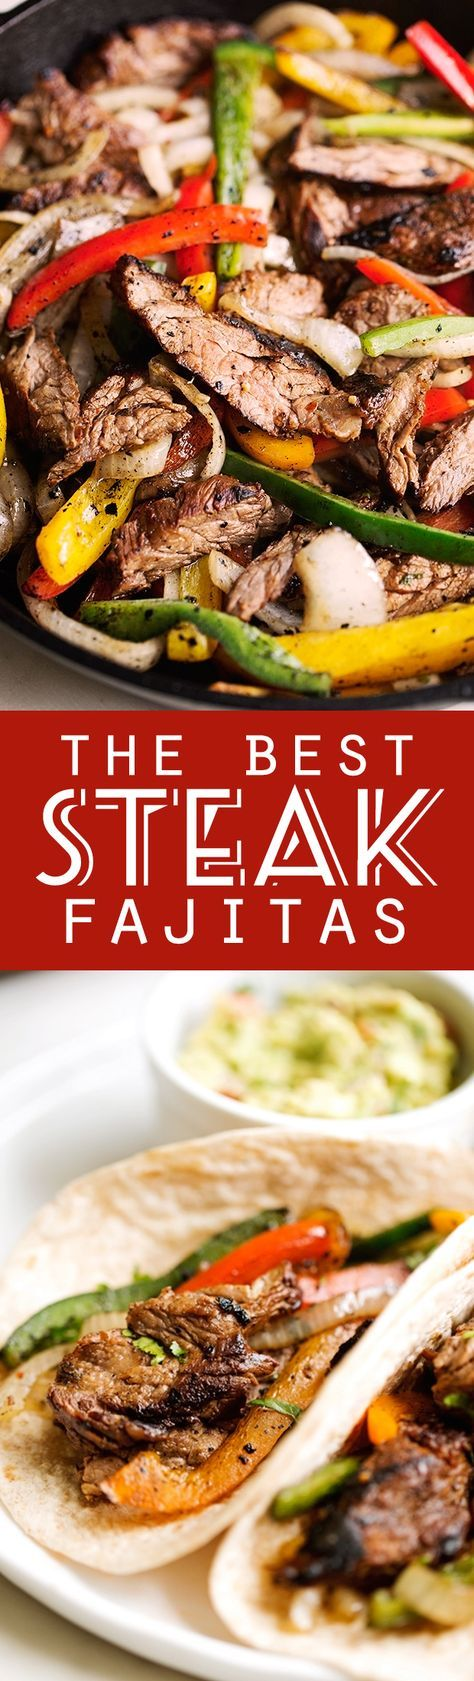 The BEST Steak Fajitas - my family loved the beef! - LSP